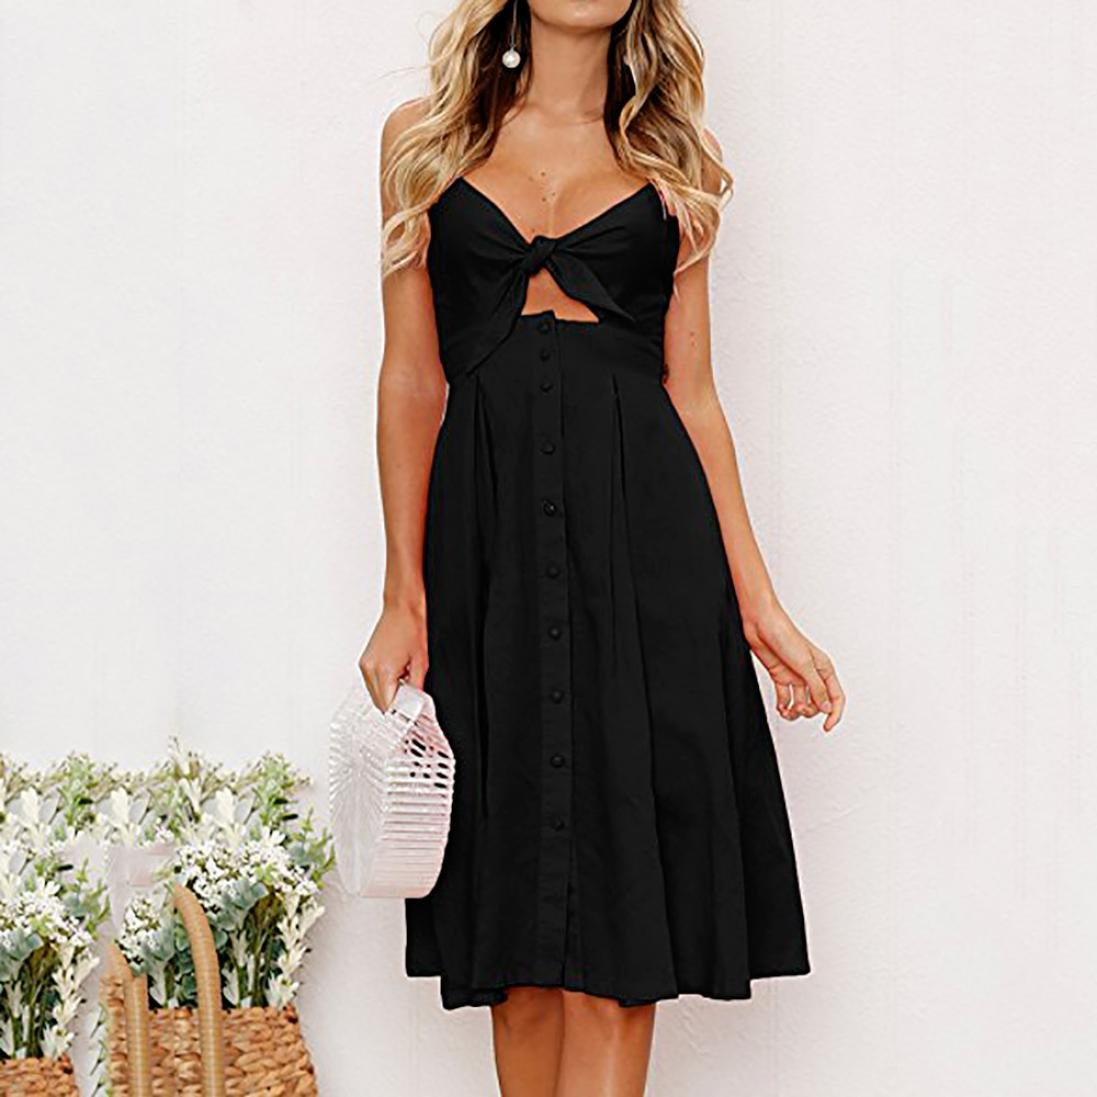 8ccf3bbe0a2 Aurorax Summer Dress Women s Sexy Deep V Neck Backless Split Maxi Party  Dress Bowknot Lace up Dress for Beach Holiday at Amazon Women s Clothing  store